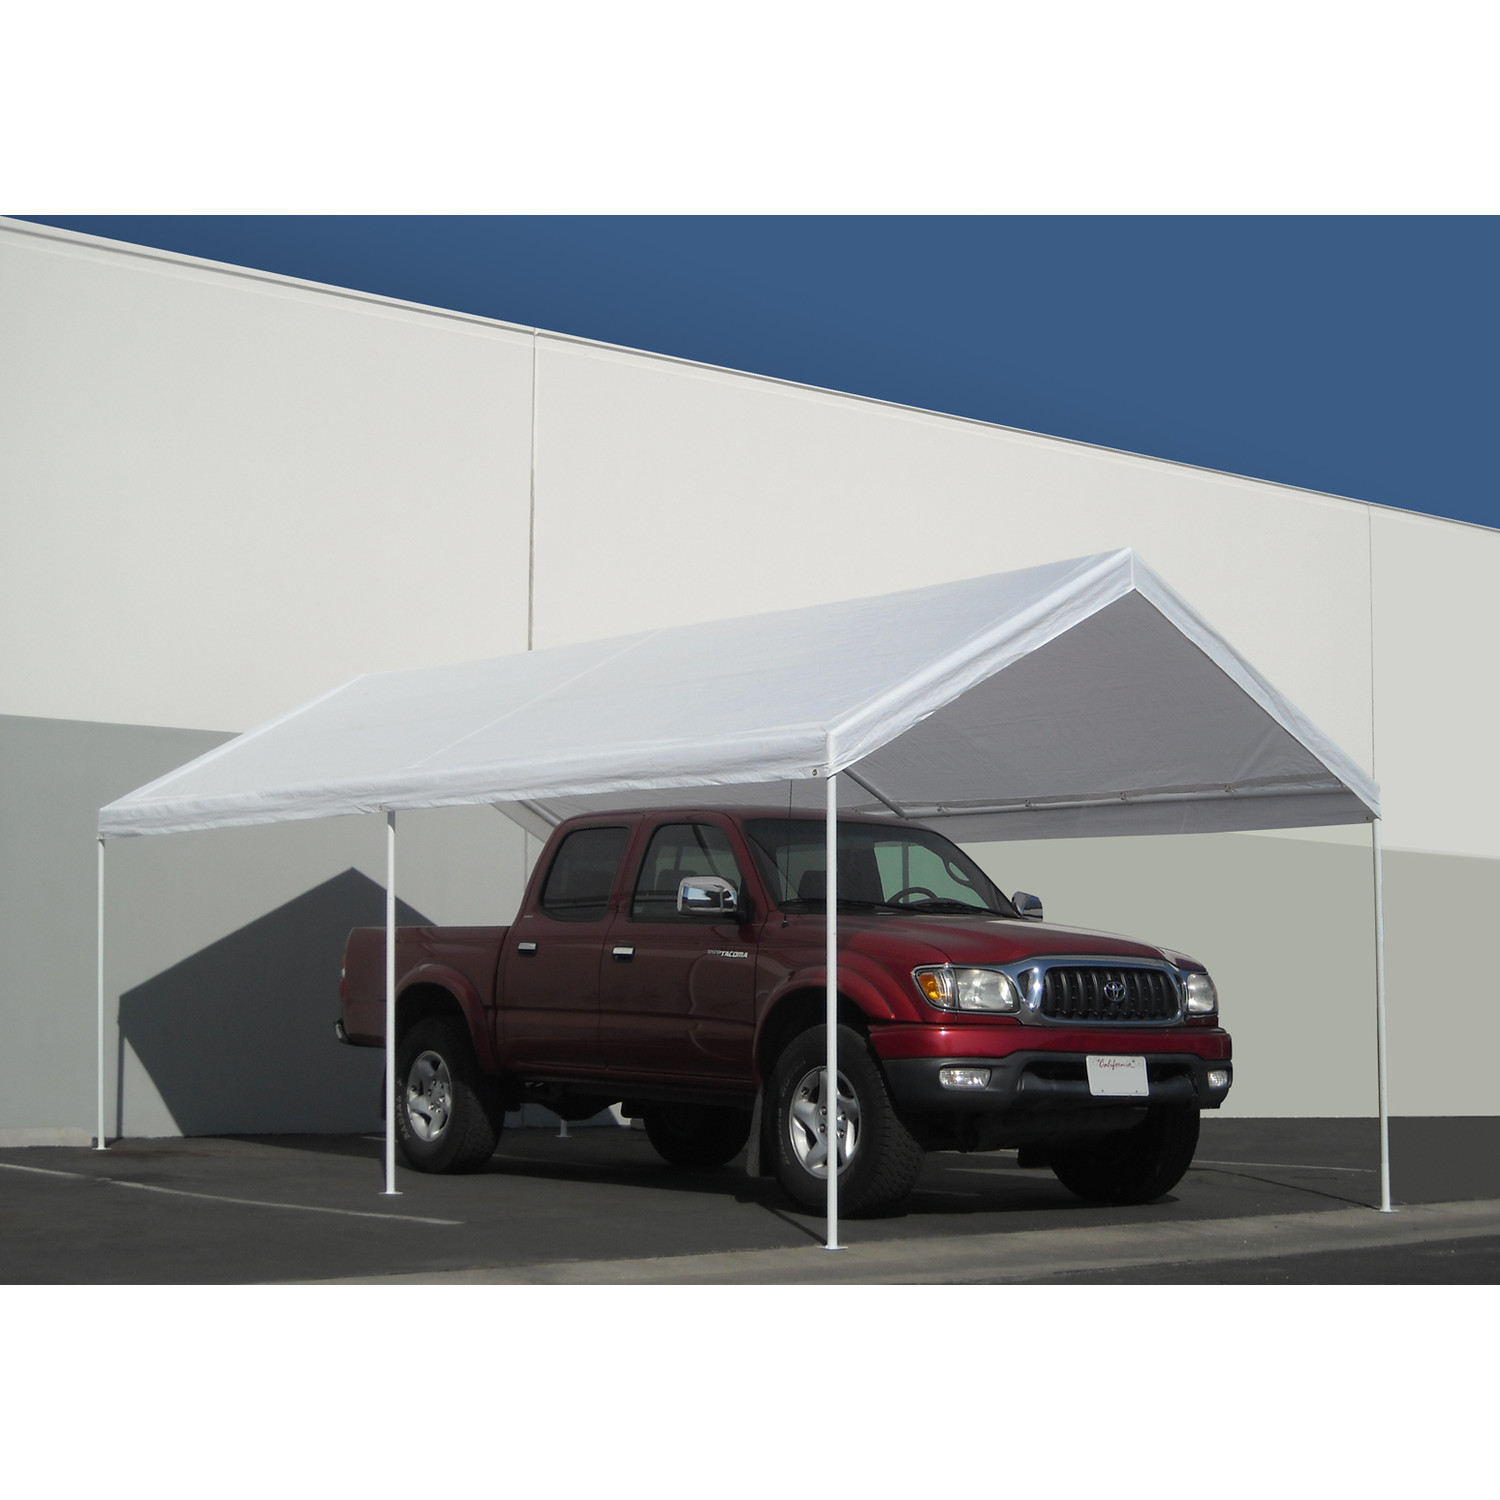 Pleasant Portable Carport Costco With Decorating Portable Car Garage Shelter Costco With Green Grass Of Portable Carport Costco